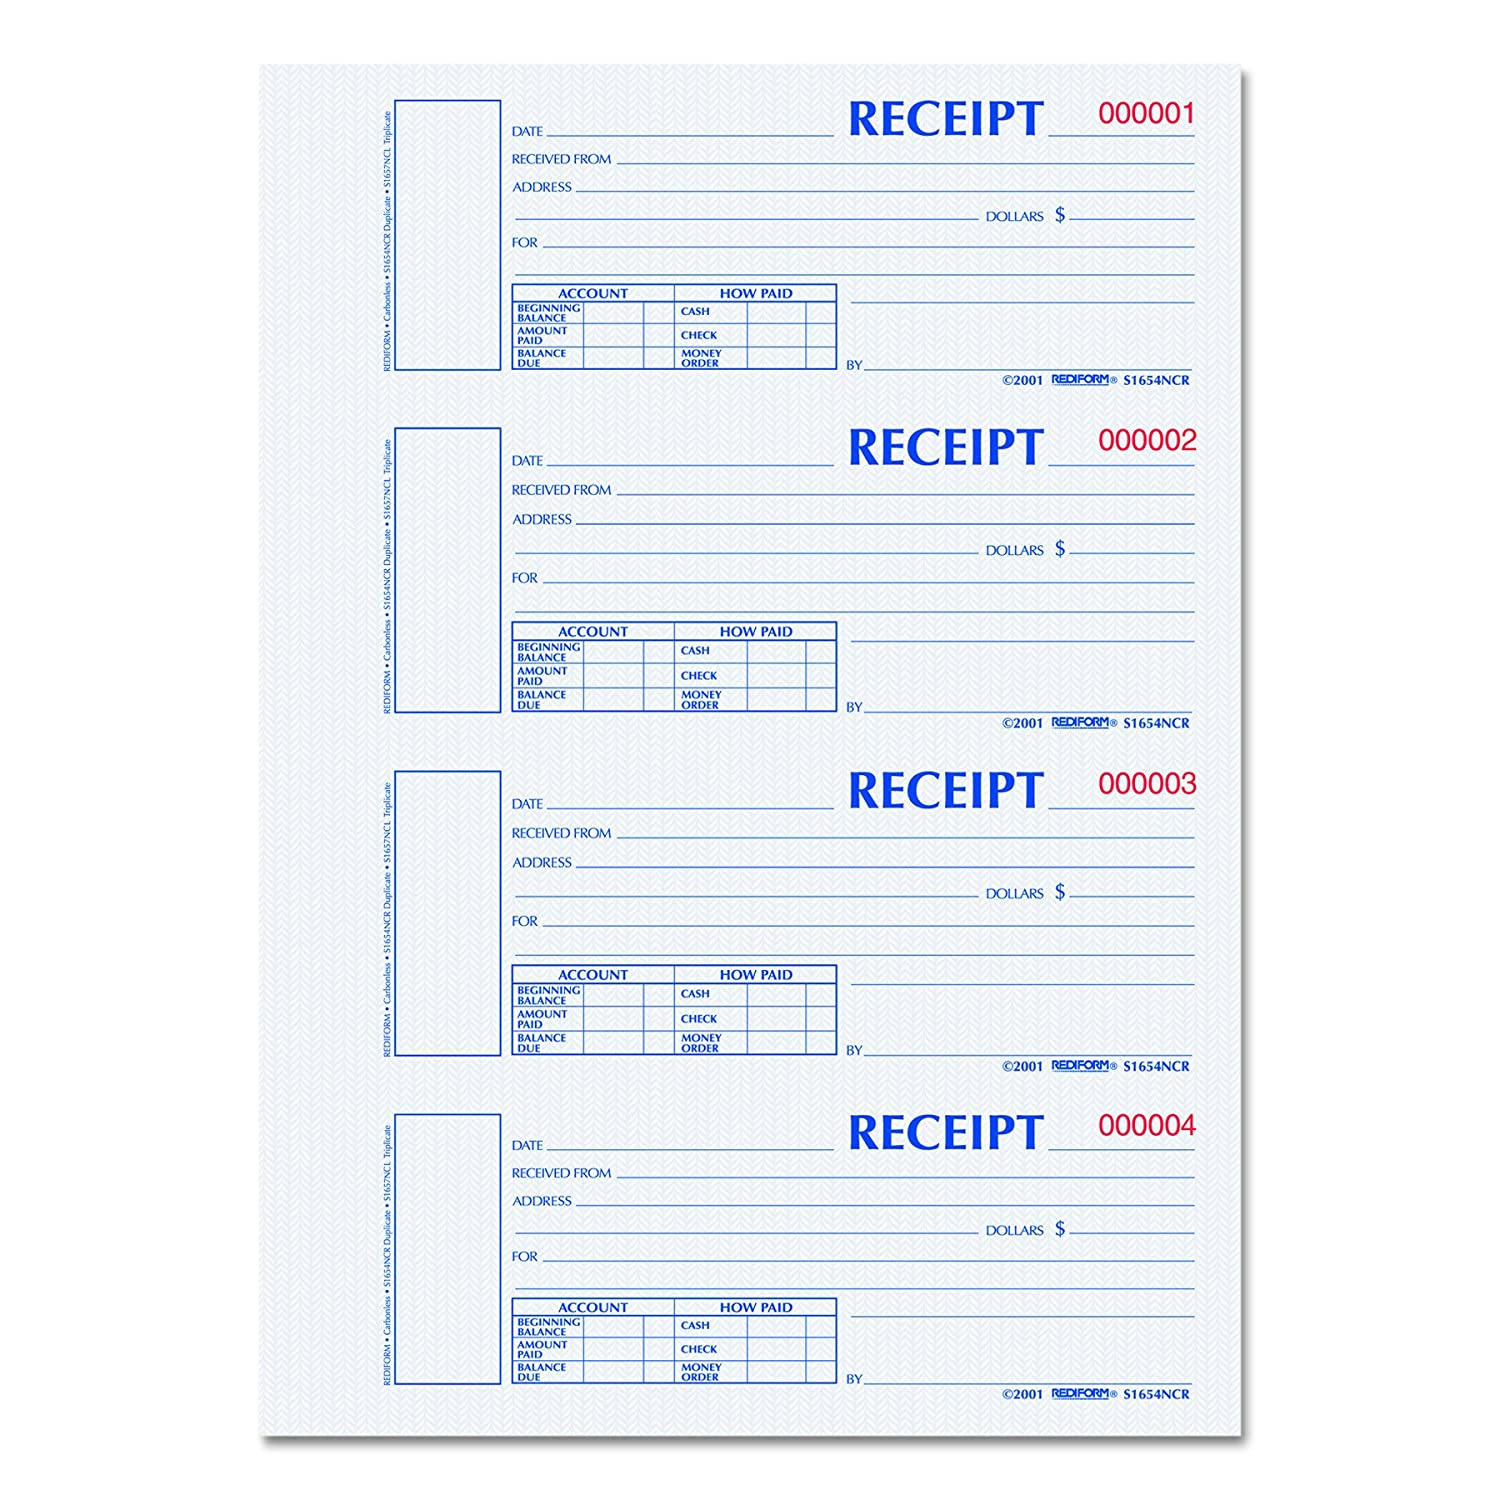 Rediform Hardcover Carbonless Numbered Money Receipt Book, 300 Duplicate Sets per Book (S1654N-CR) S1654NCR